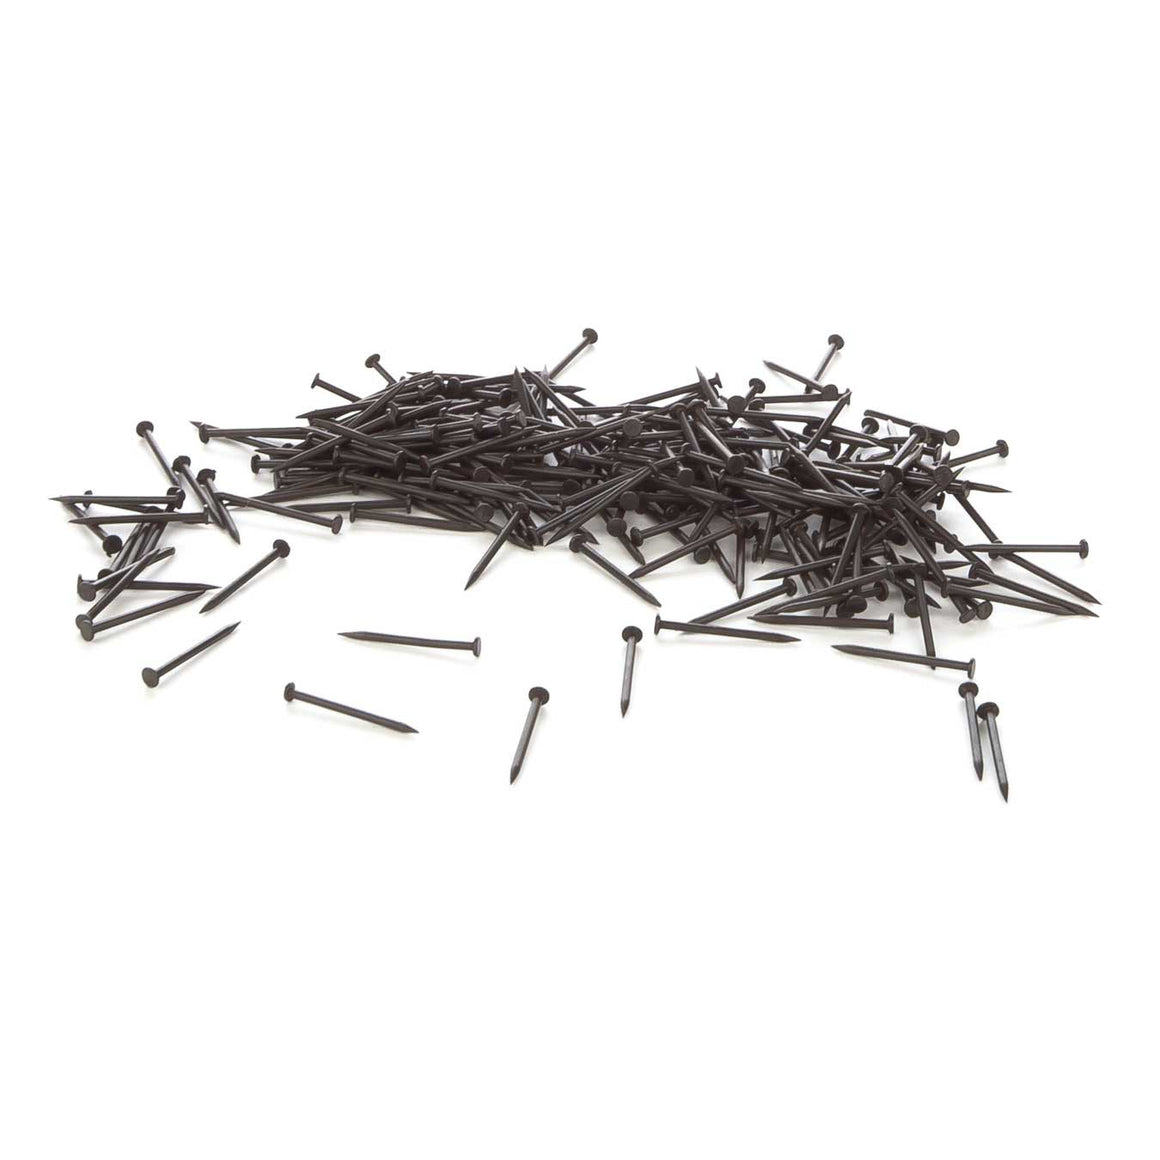 HO Scale: Blackened Track Nails - 300 Pack